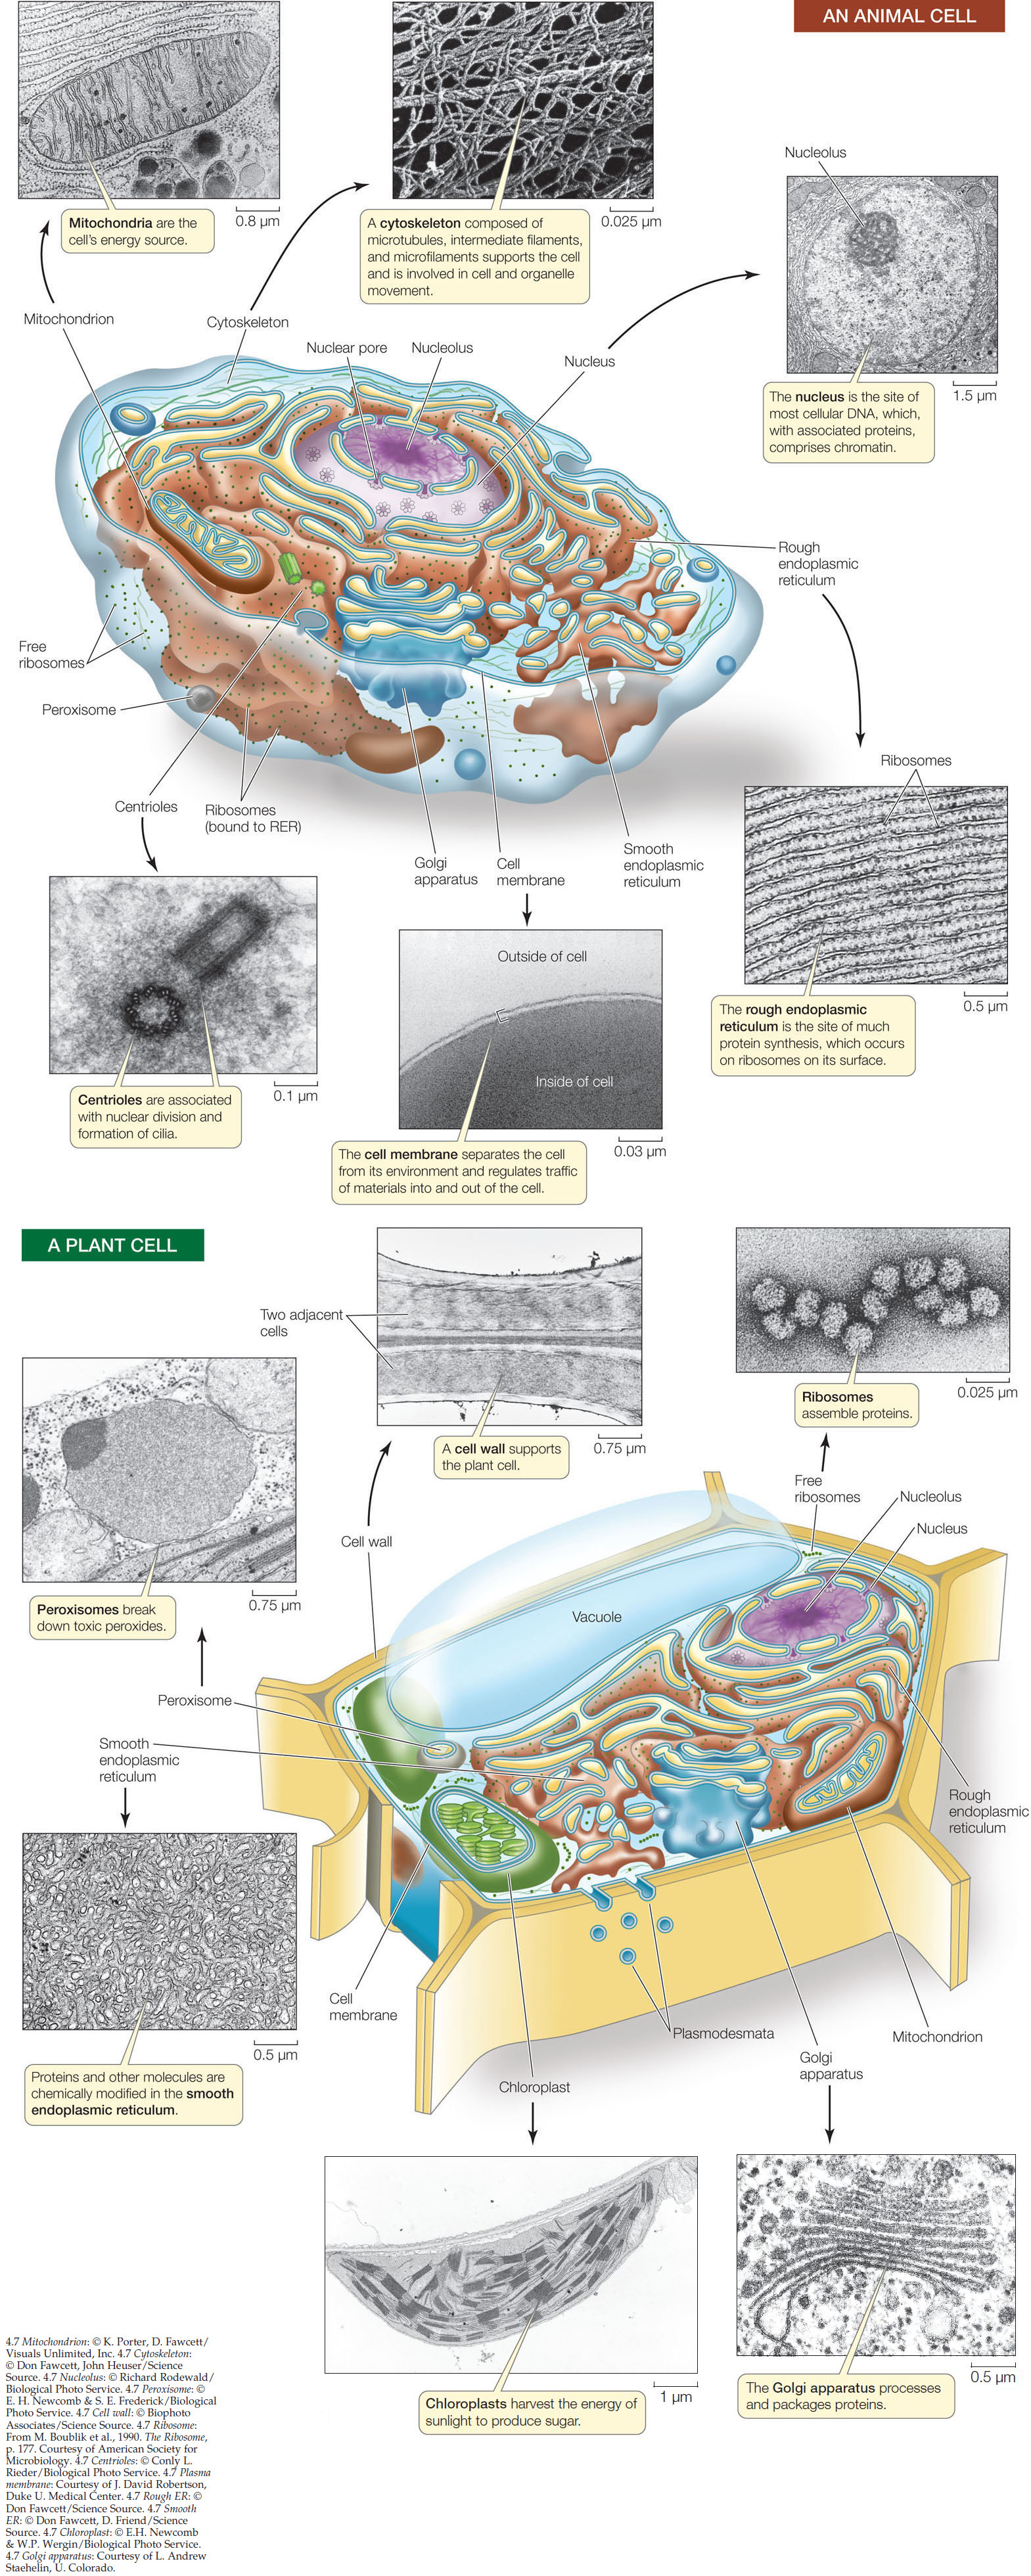 Hillis2e Ch04 Plant Cell Structure Diagram Plasmodesmata Allow Water Ions Small Molecules Hormones And Even Some Rna Protein To Move Between Connected Cells